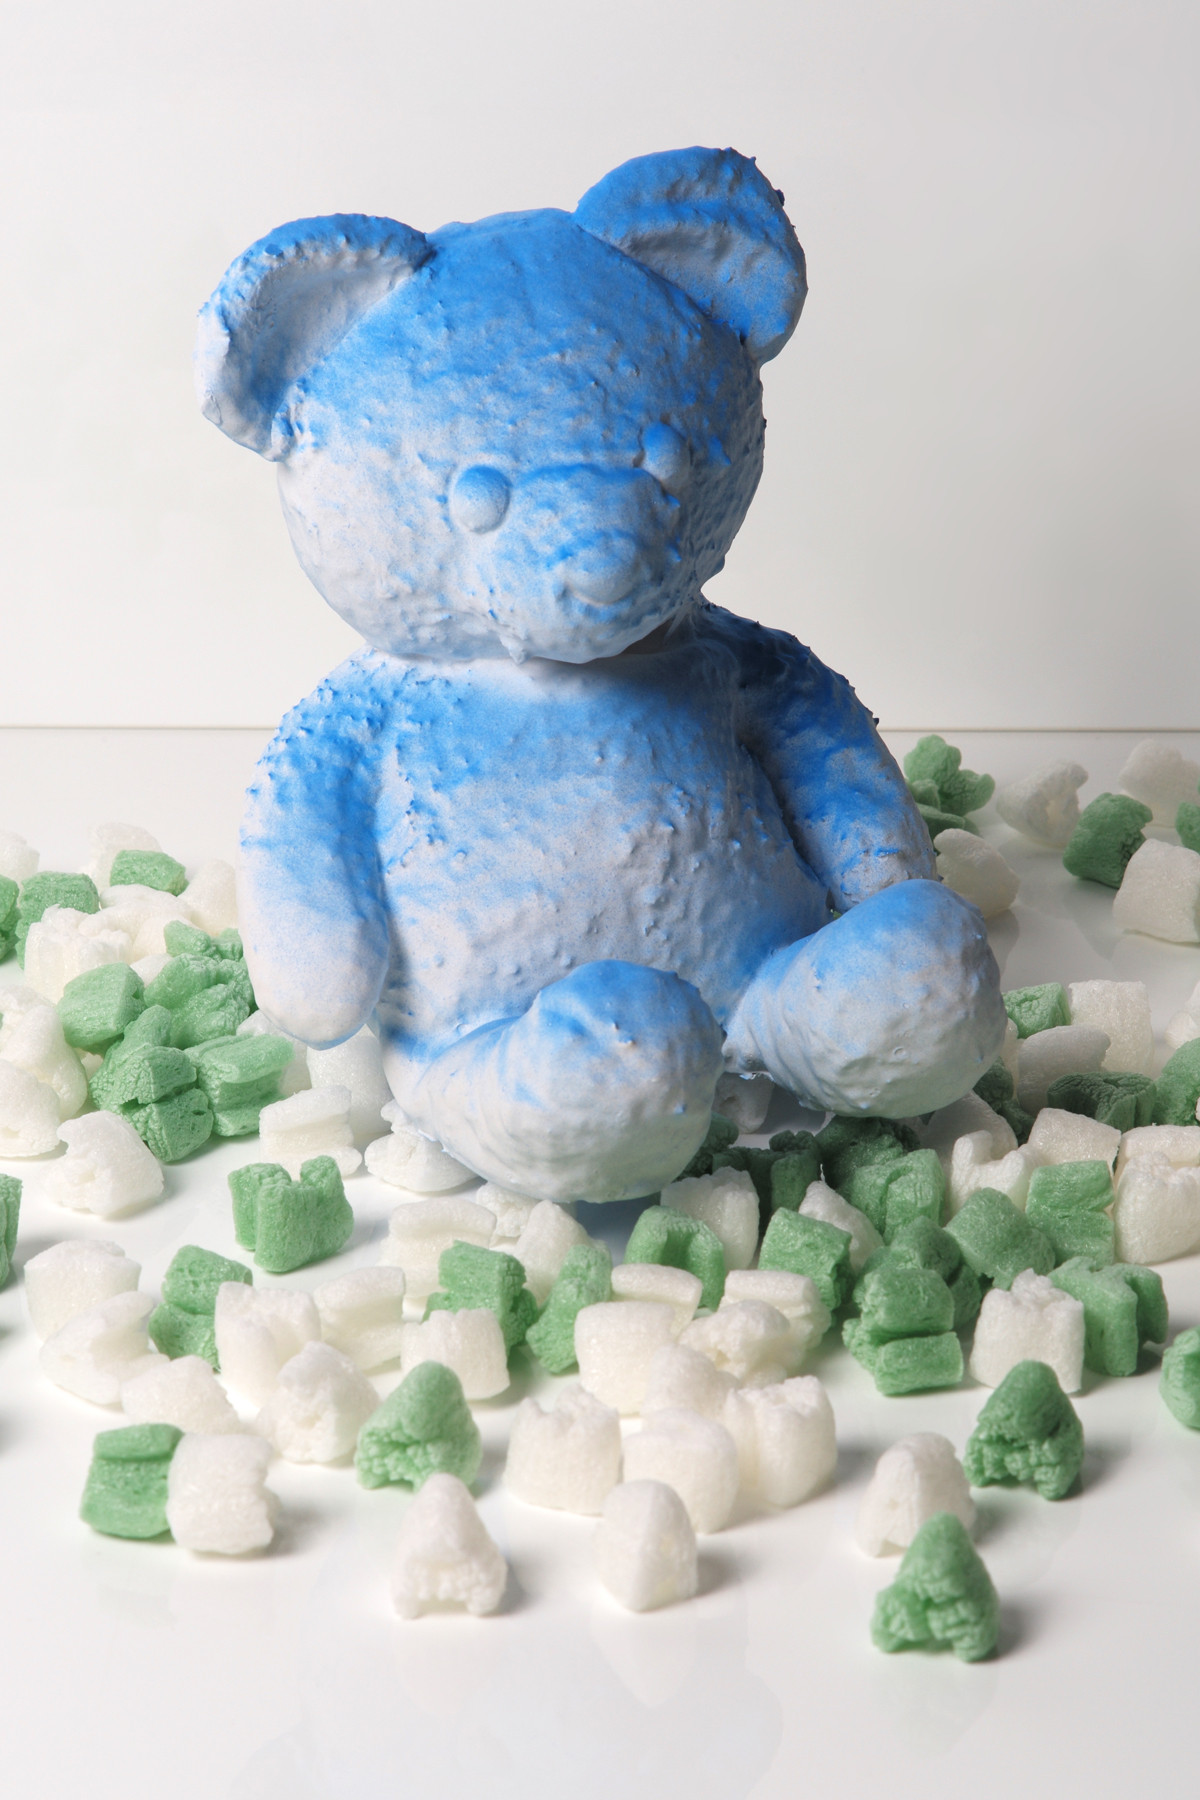 https---hypebeast.com-image-2018-08-daniel-arsham-cracked-bear-edition-launch-10